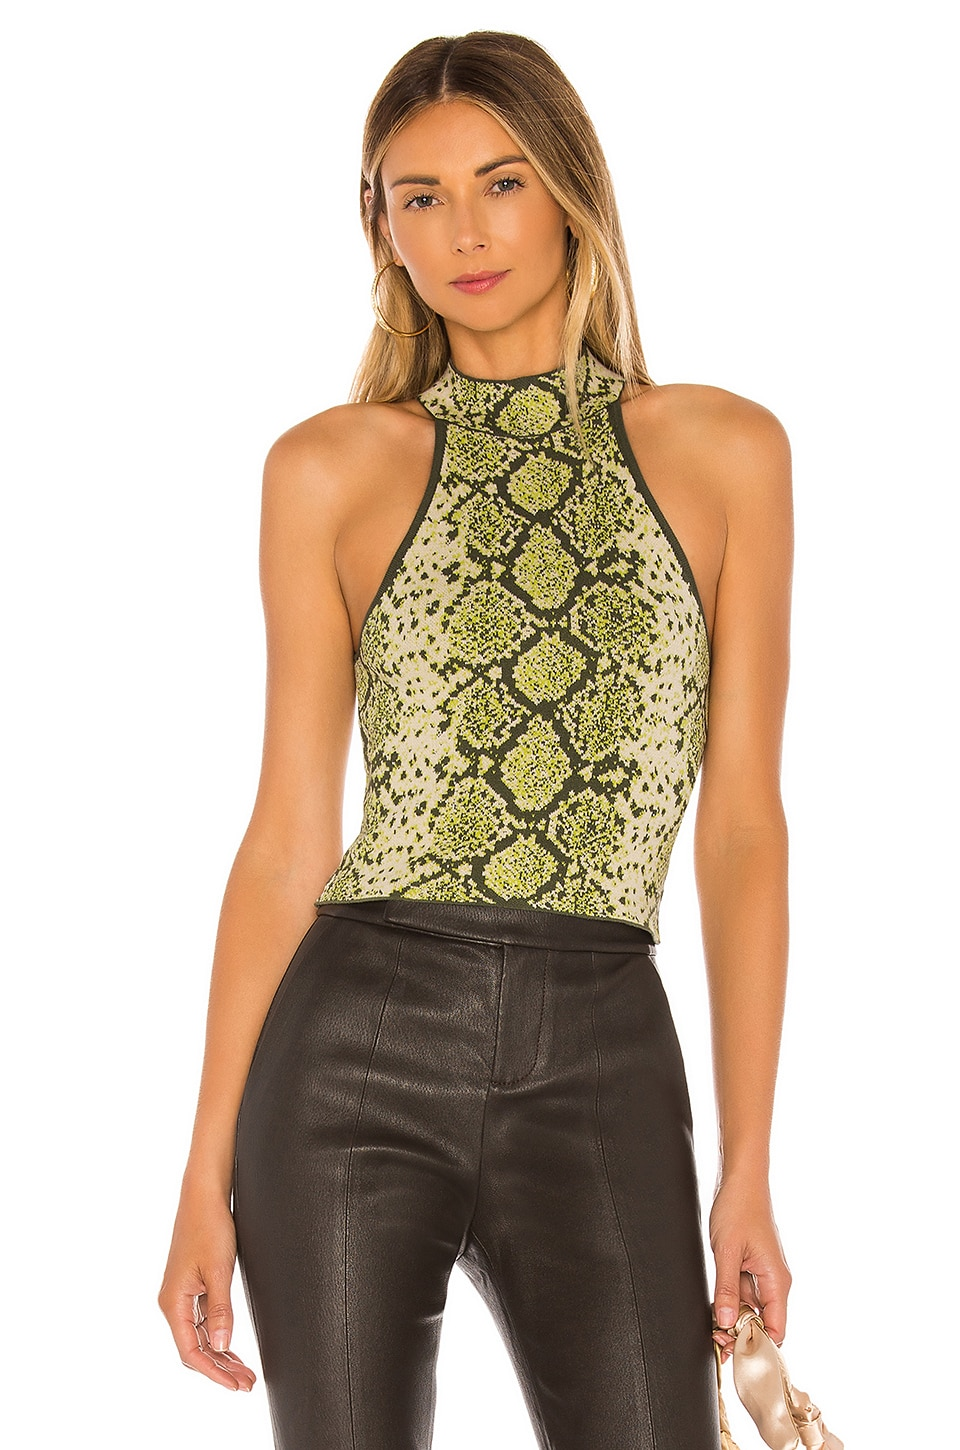 J.O.A. Halter Neck Sweater Top in Snake Print